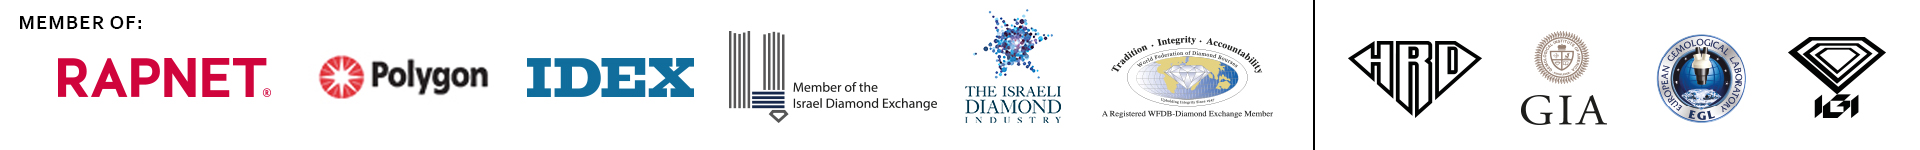 Members Of Logos: Rapnet, Polygon, IDEX, Israeli Diamond Exchange (IDE), Israeli Diamond Institute (IDI), World Federation of Diamond Bourses (WFDB), HRD, GIA, EGL, IGI